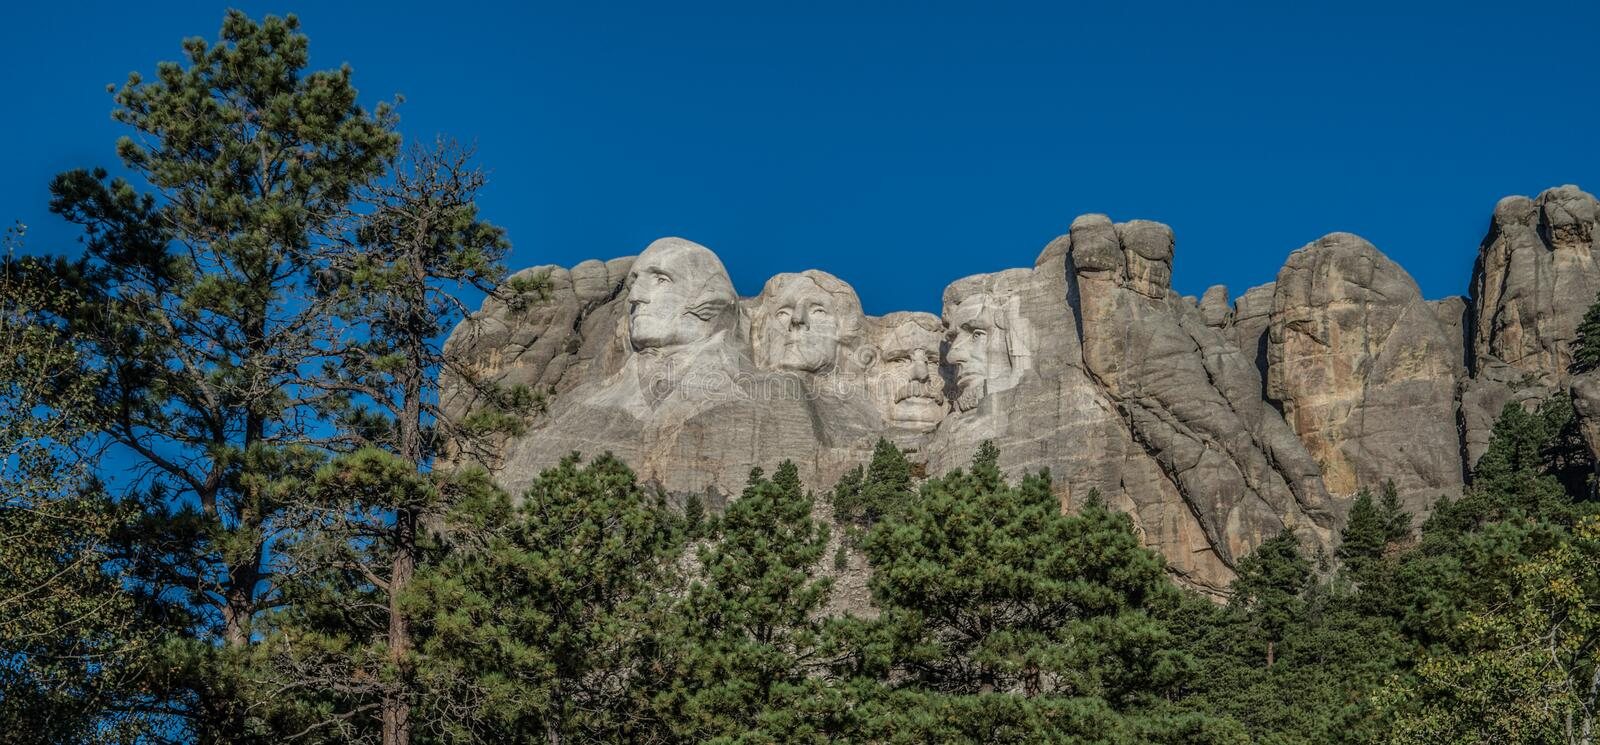 Carvings no Monte Rushmore em South Dakota imagem de stock royalty free